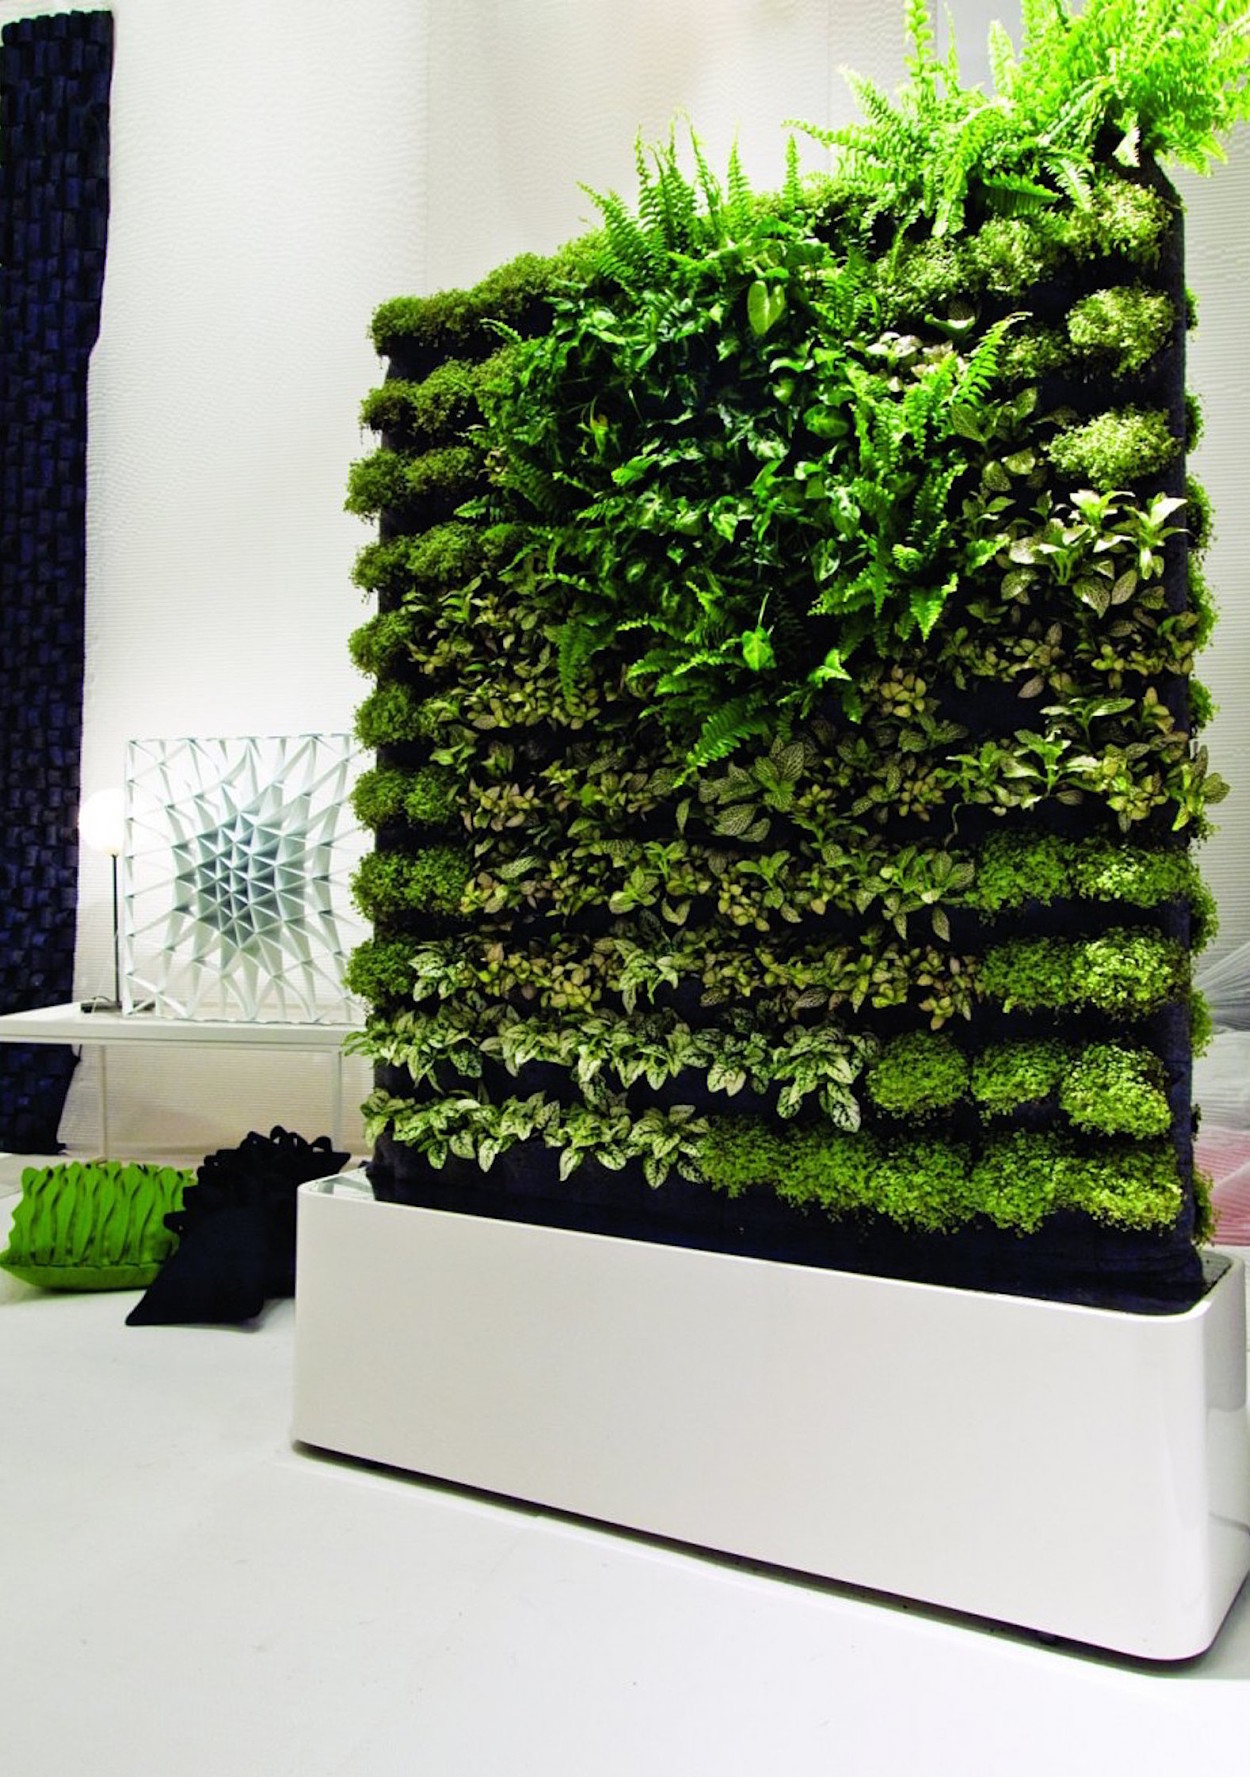 Ikea Plantation Moss Wall Art Isn't Just Pretty, It's Good For You Too